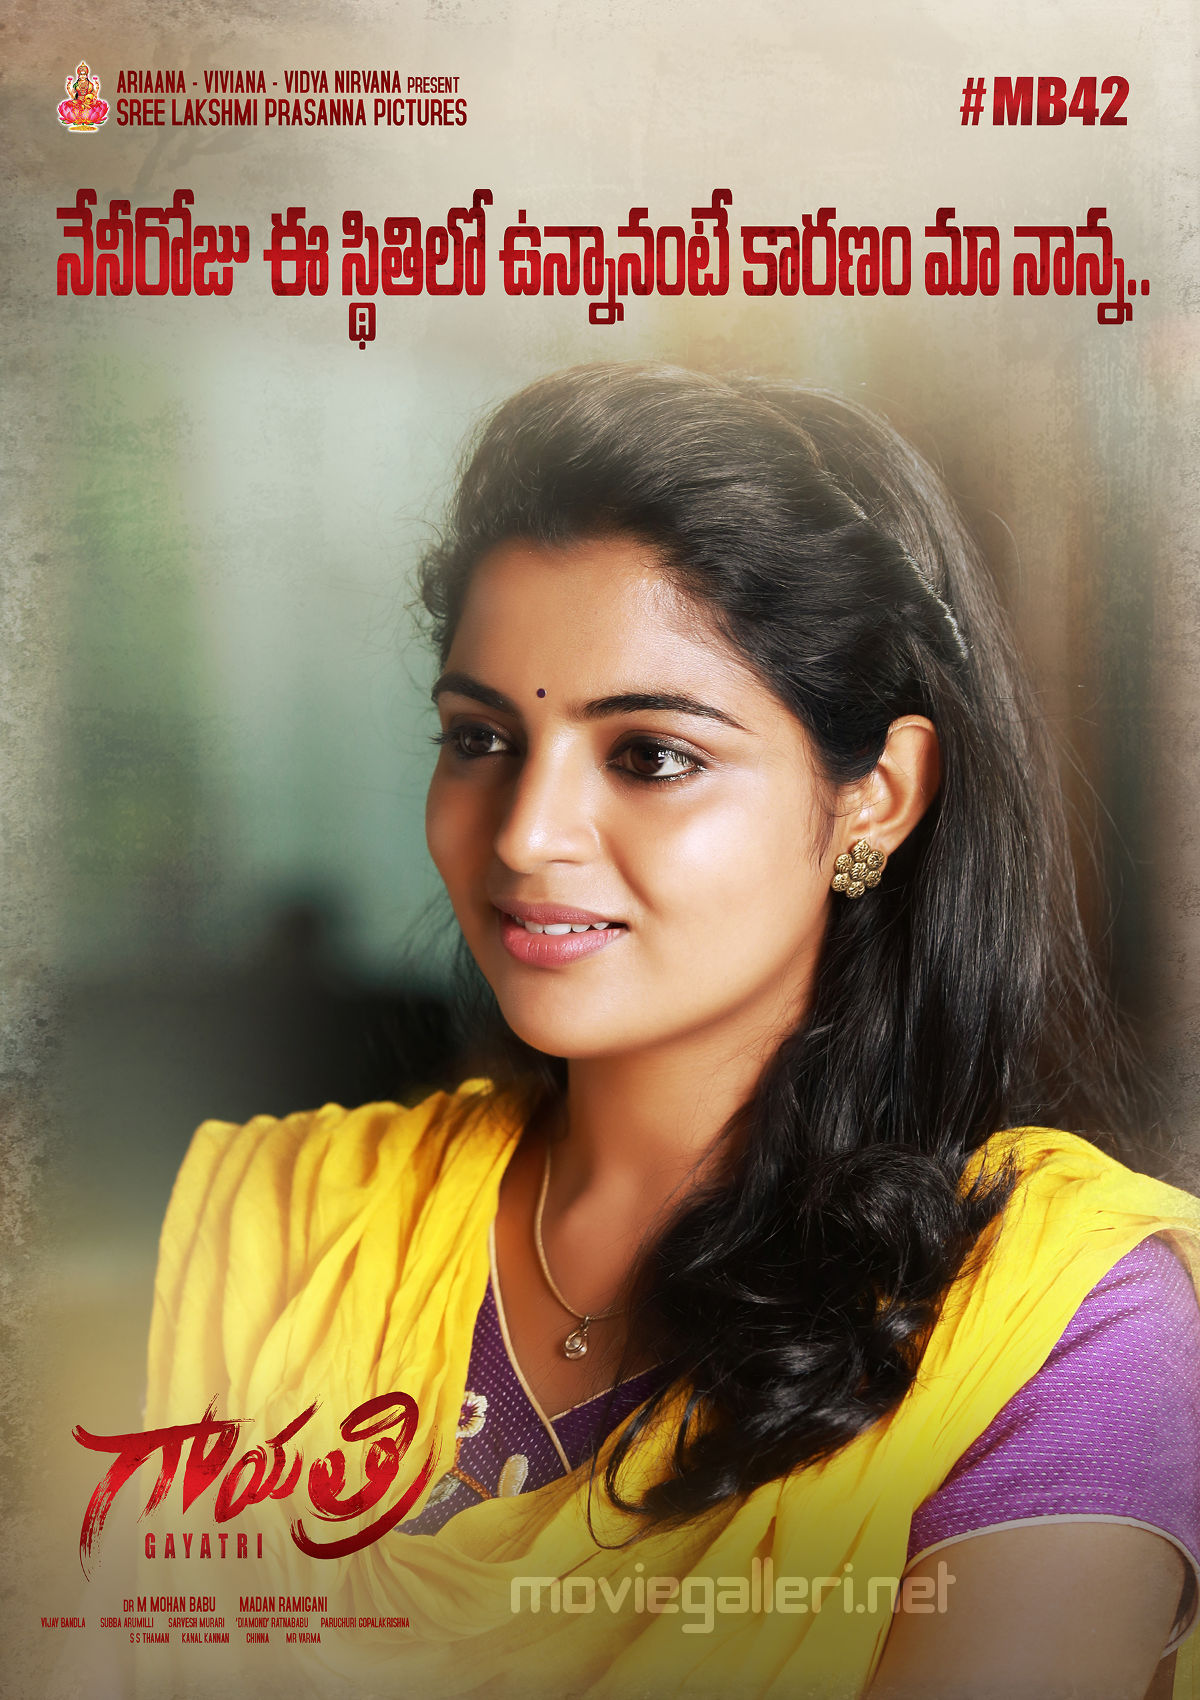 Gayatri Movie Actress Nikhila Vimal first look poster